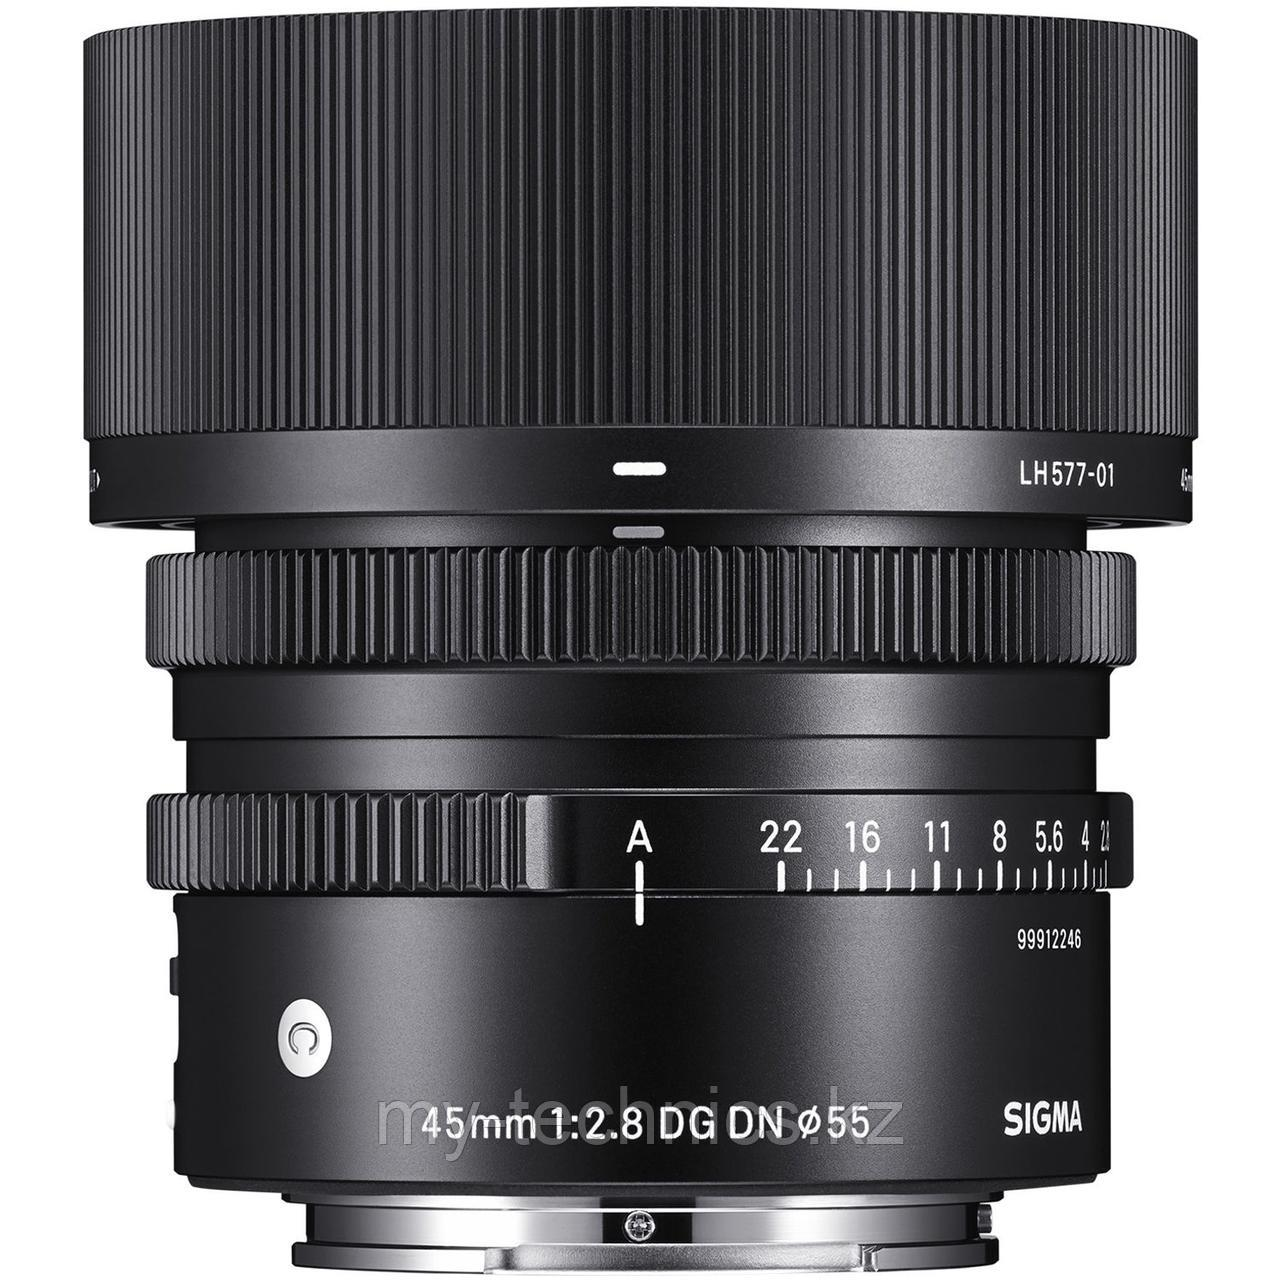 Sigma 45mm F/2.8 DG DN Contemporary Sony